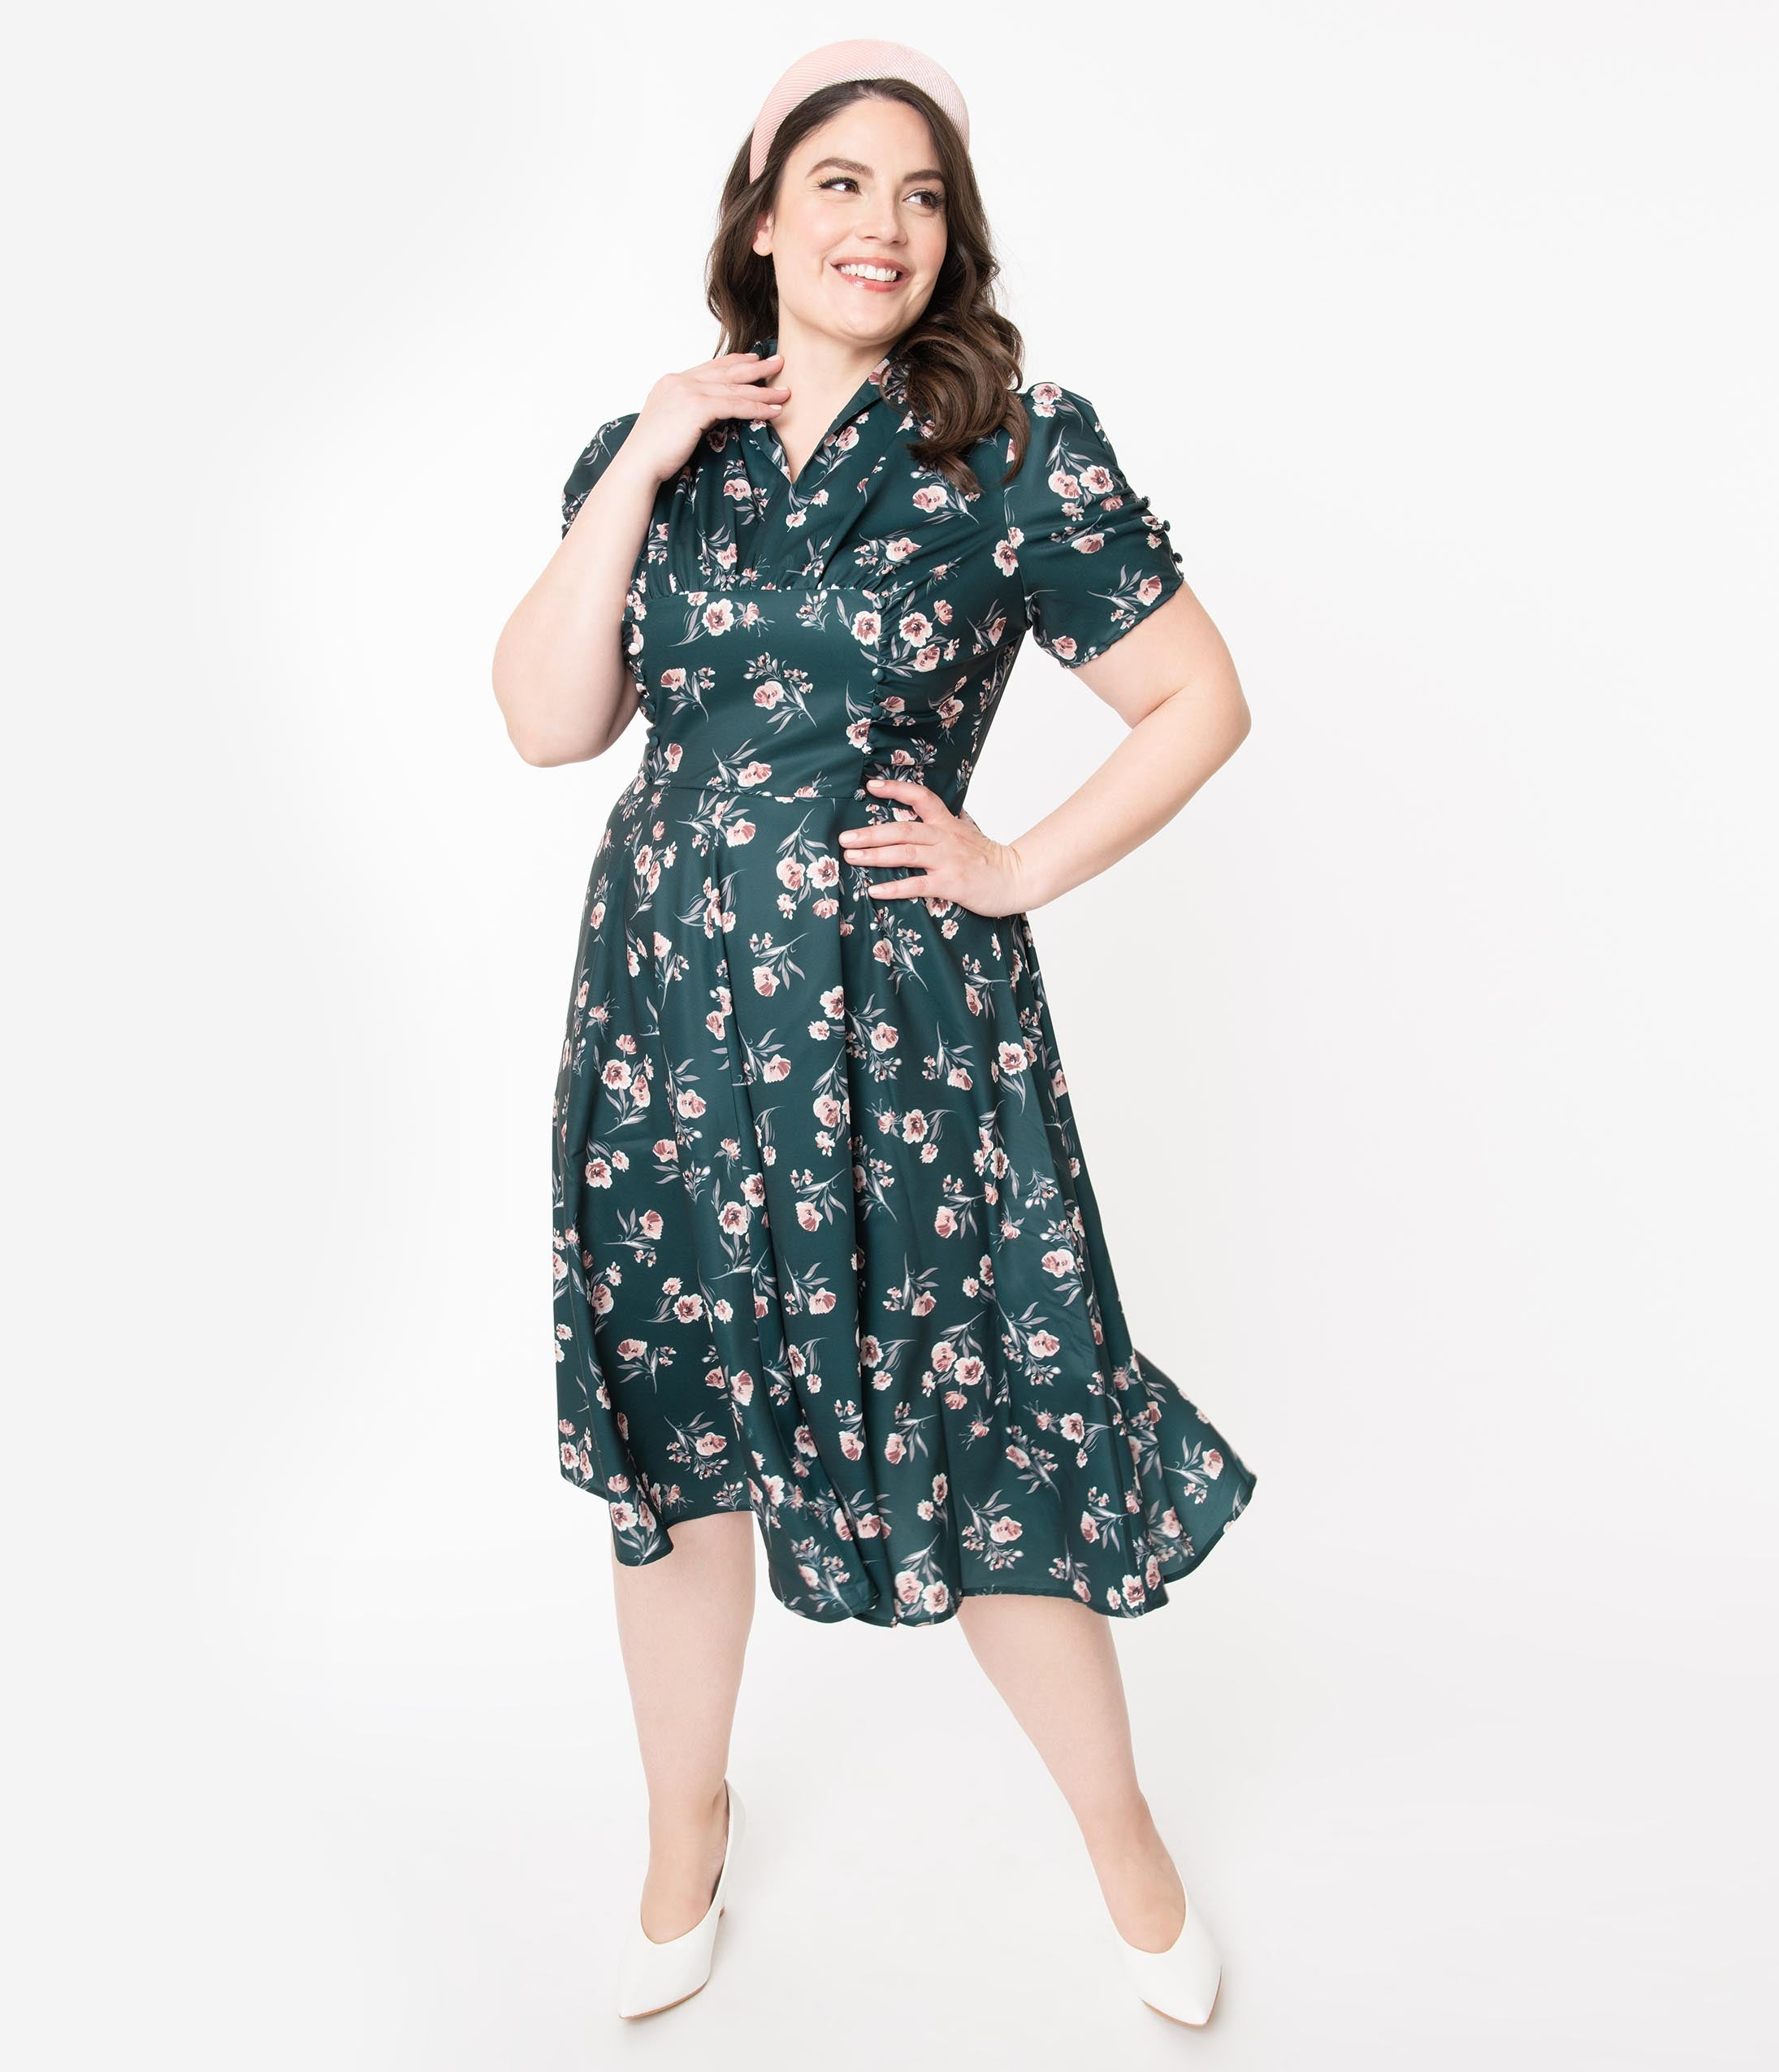 1940s Plus Size Dresses | Swing Dress, Tea Dress Unique Vintage Plus Size 1940S Green Floral Print Camilla Midi Dress $78.00 AT vintagedancer.com